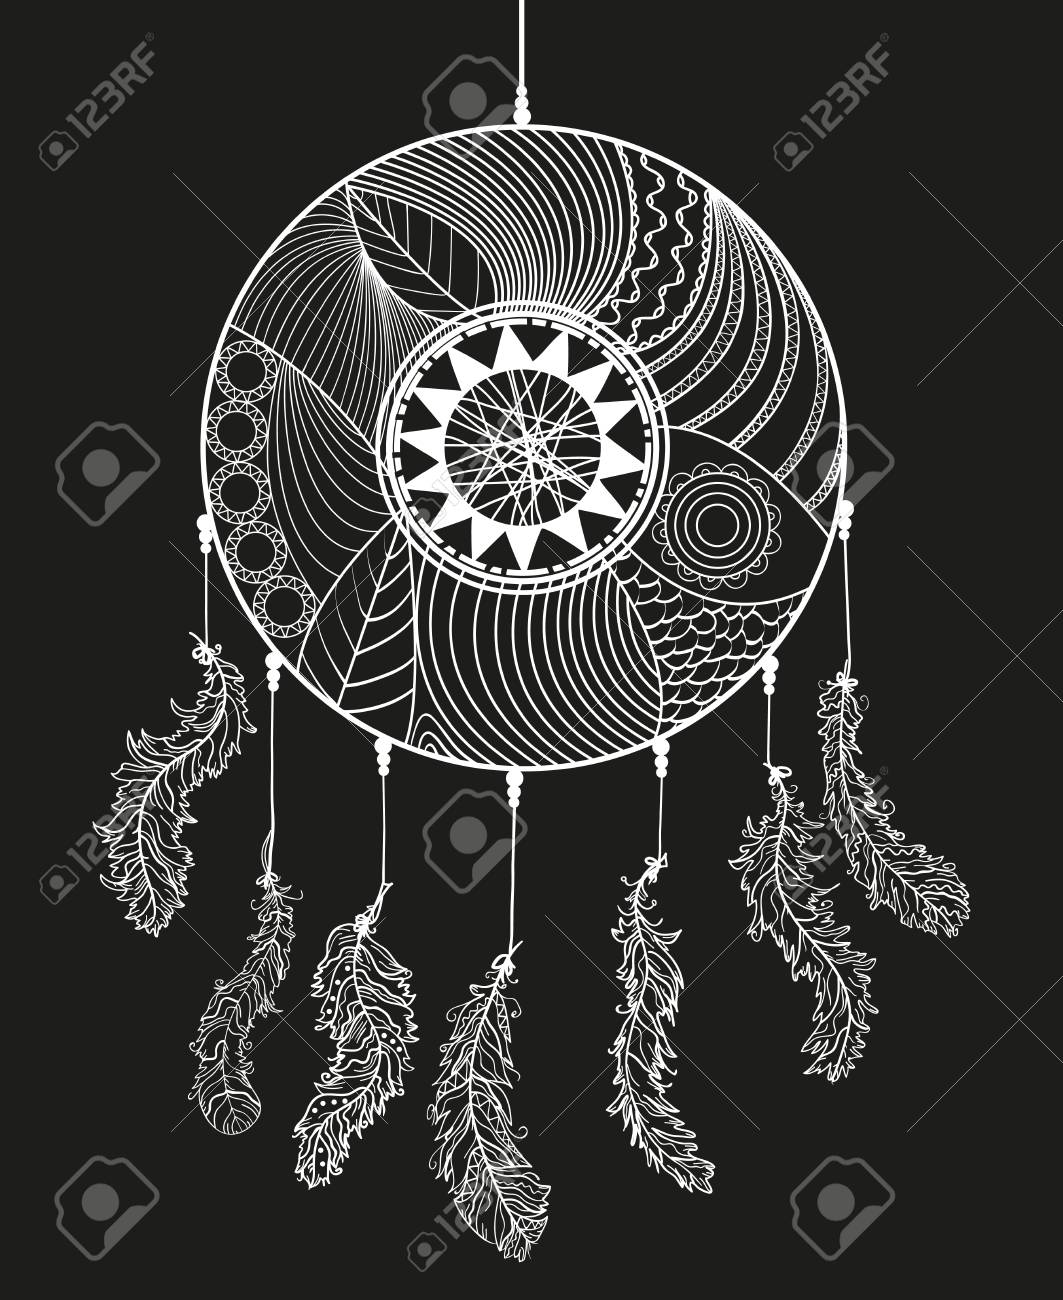 Hand Drawn White Dreamcatcher On Black Background Zentangle